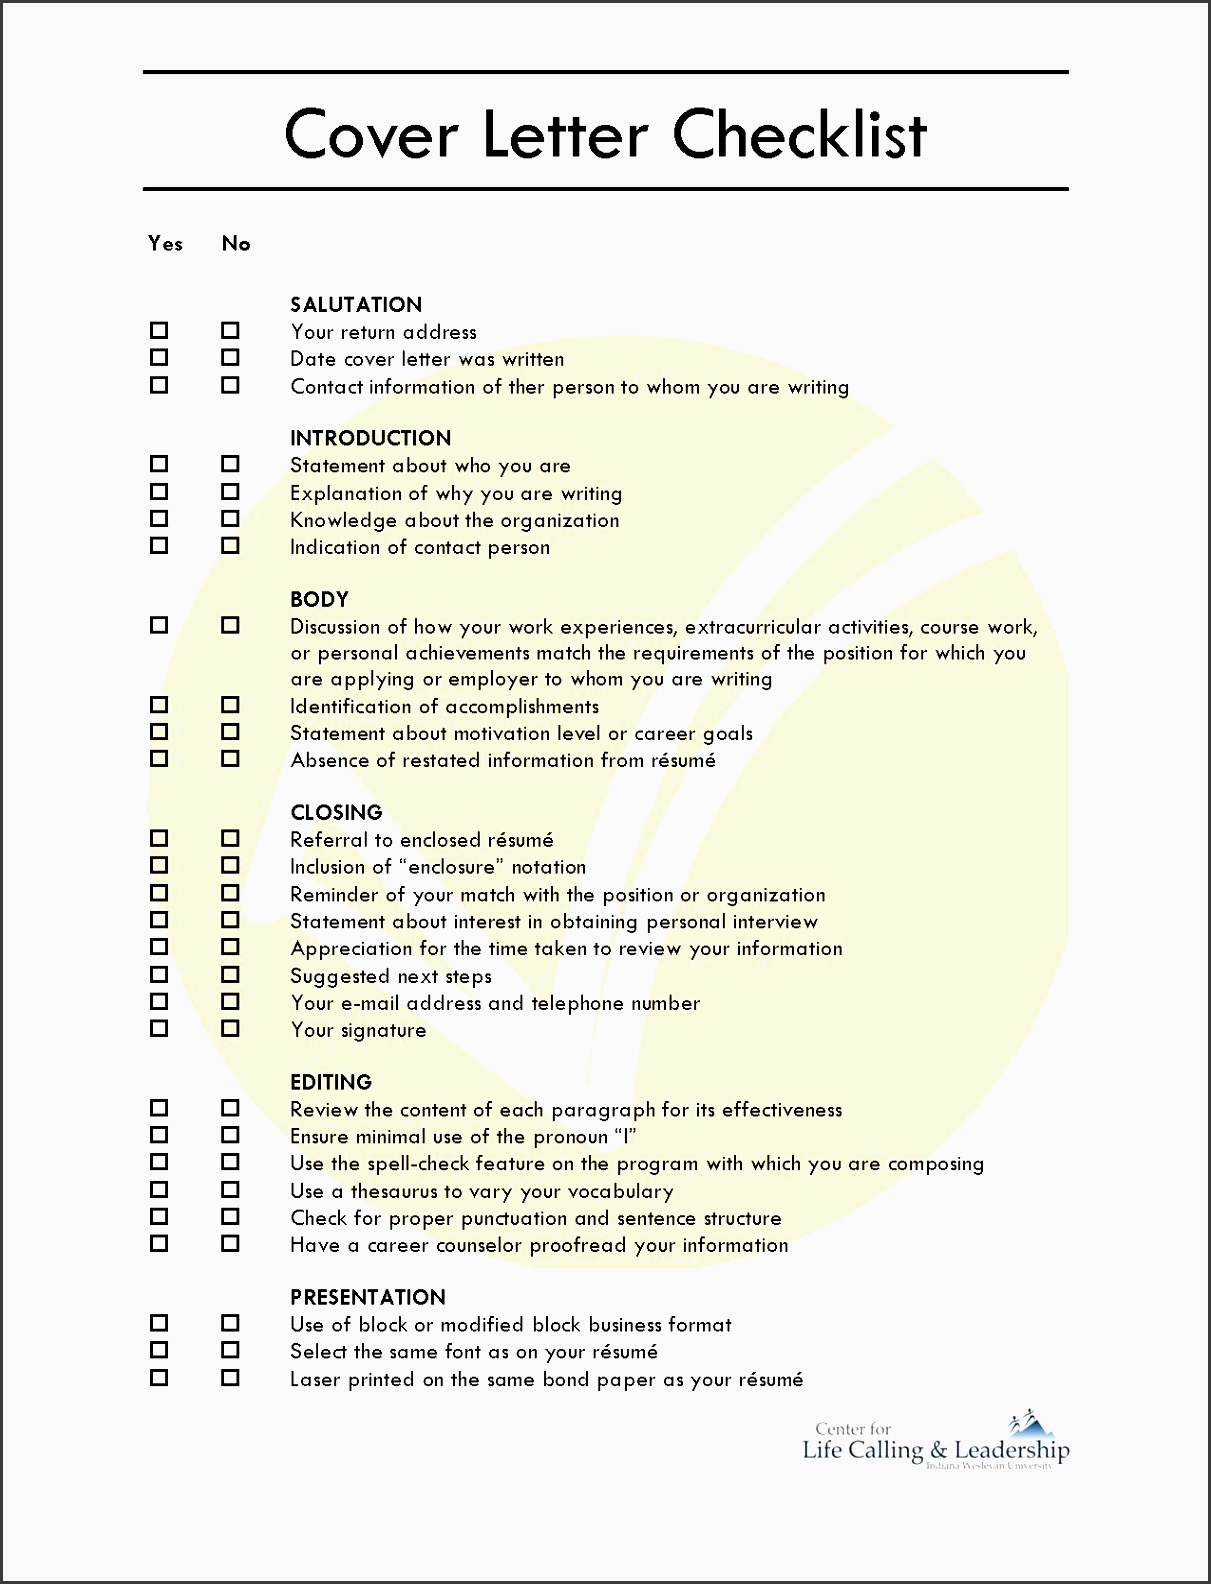 dynamic cover letter openings